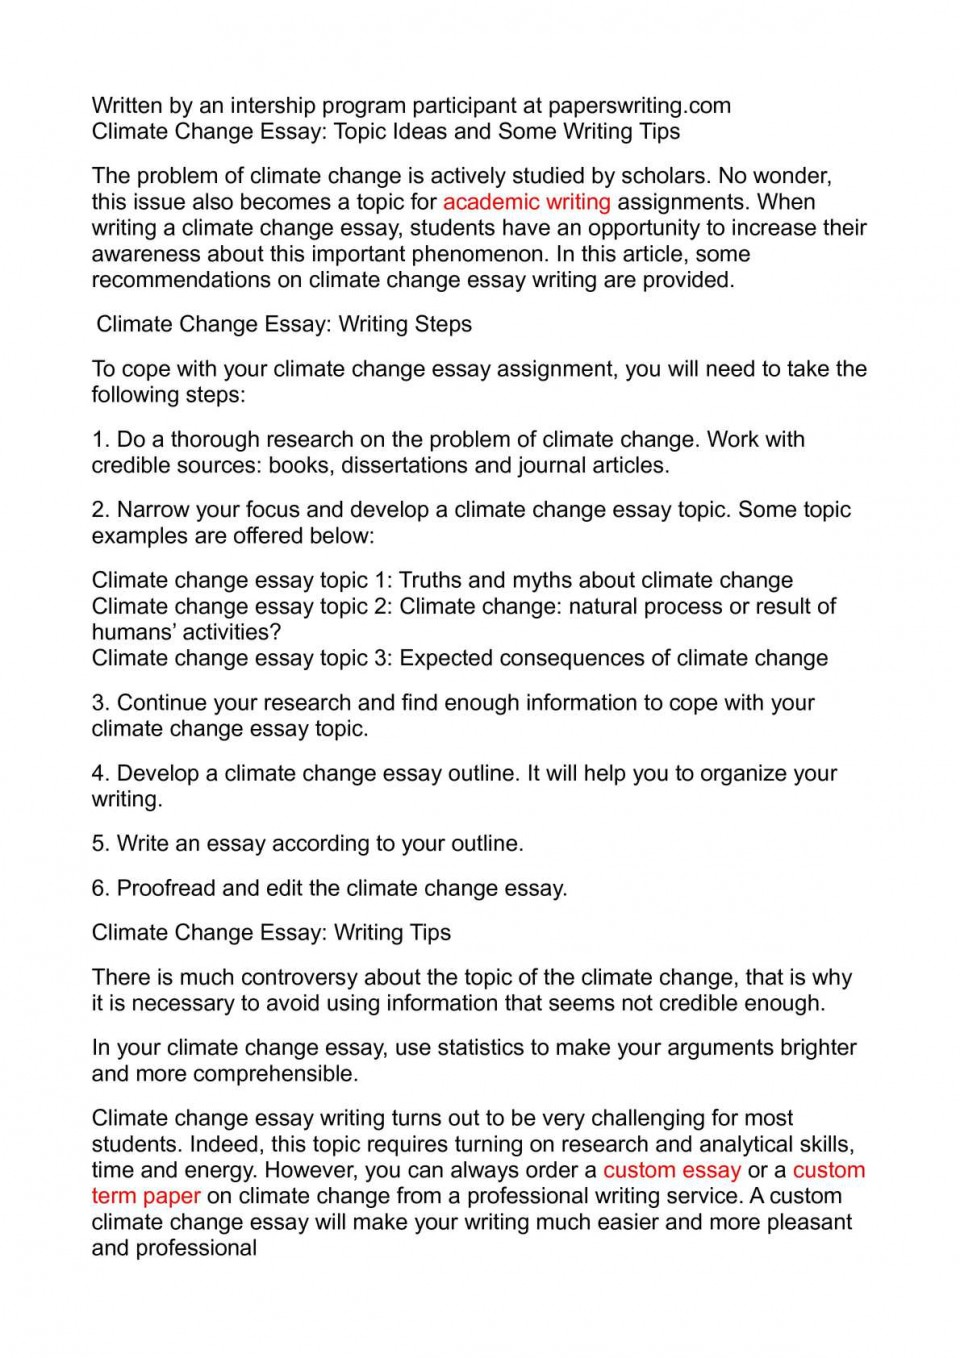 012 Climate Change Essay Topics Uncategorized Global Warming Topic Ways To St Oracleboss Research Paper20 Paper Unusual Ideas For High School Good 960